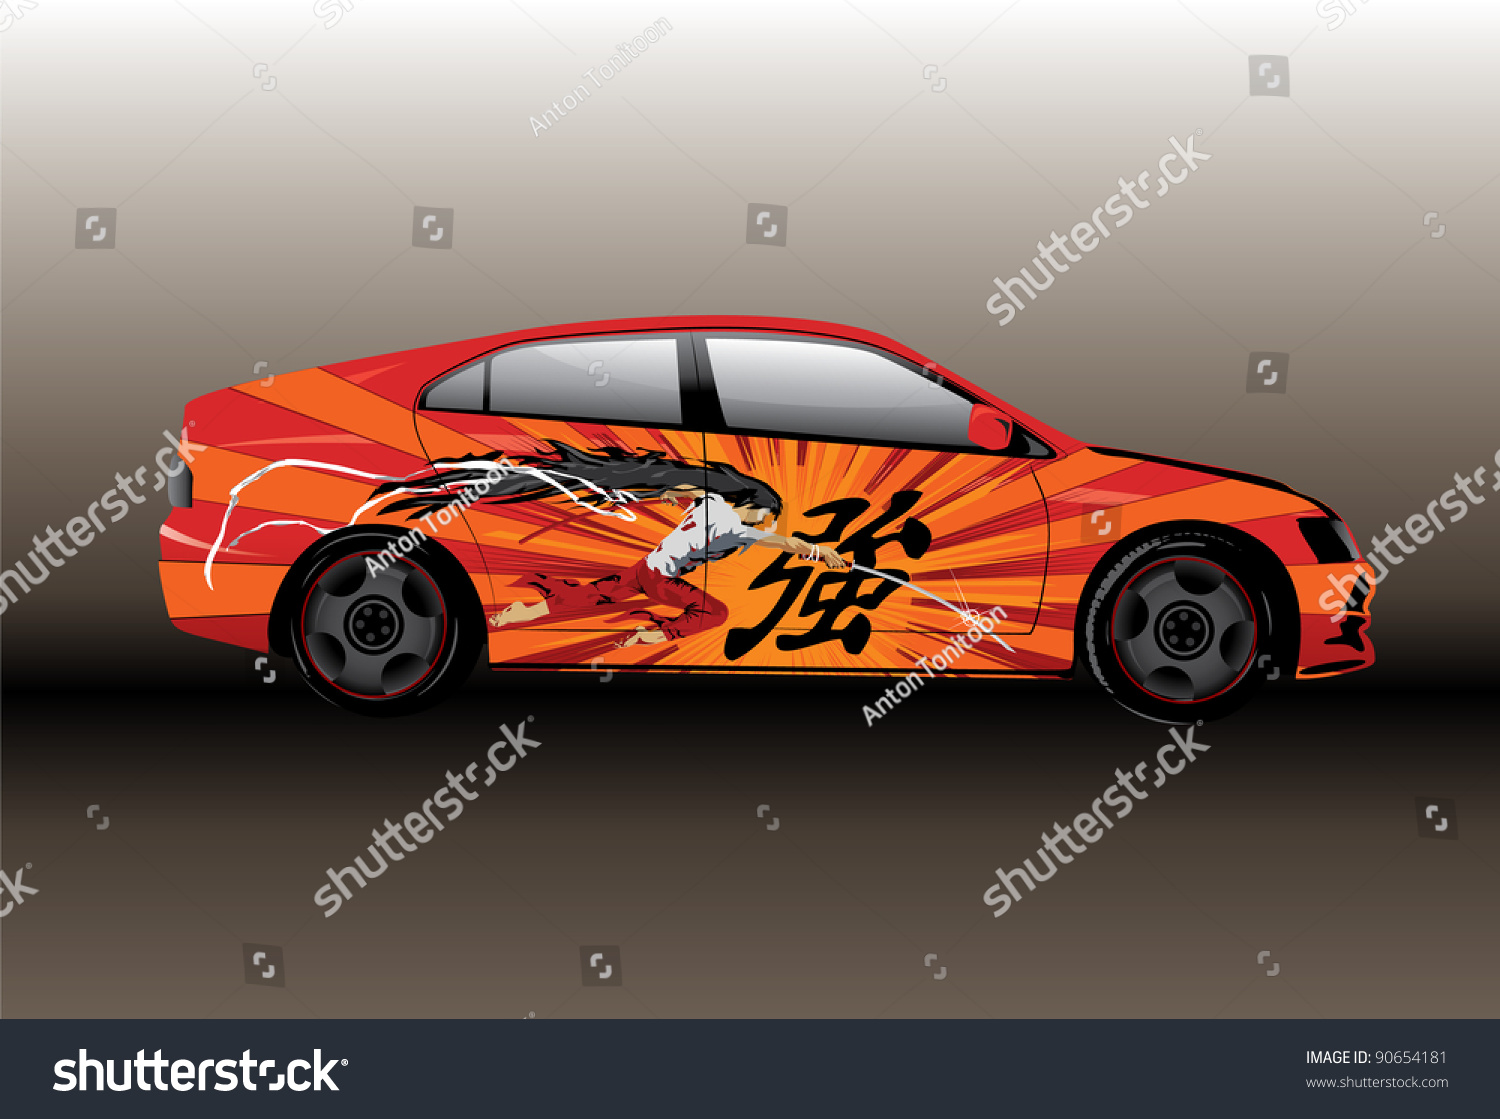 Design your car sticker - This Is Designed For Car Vinyl Stickers To Do Your Car Beautiful And Interesting Chinese